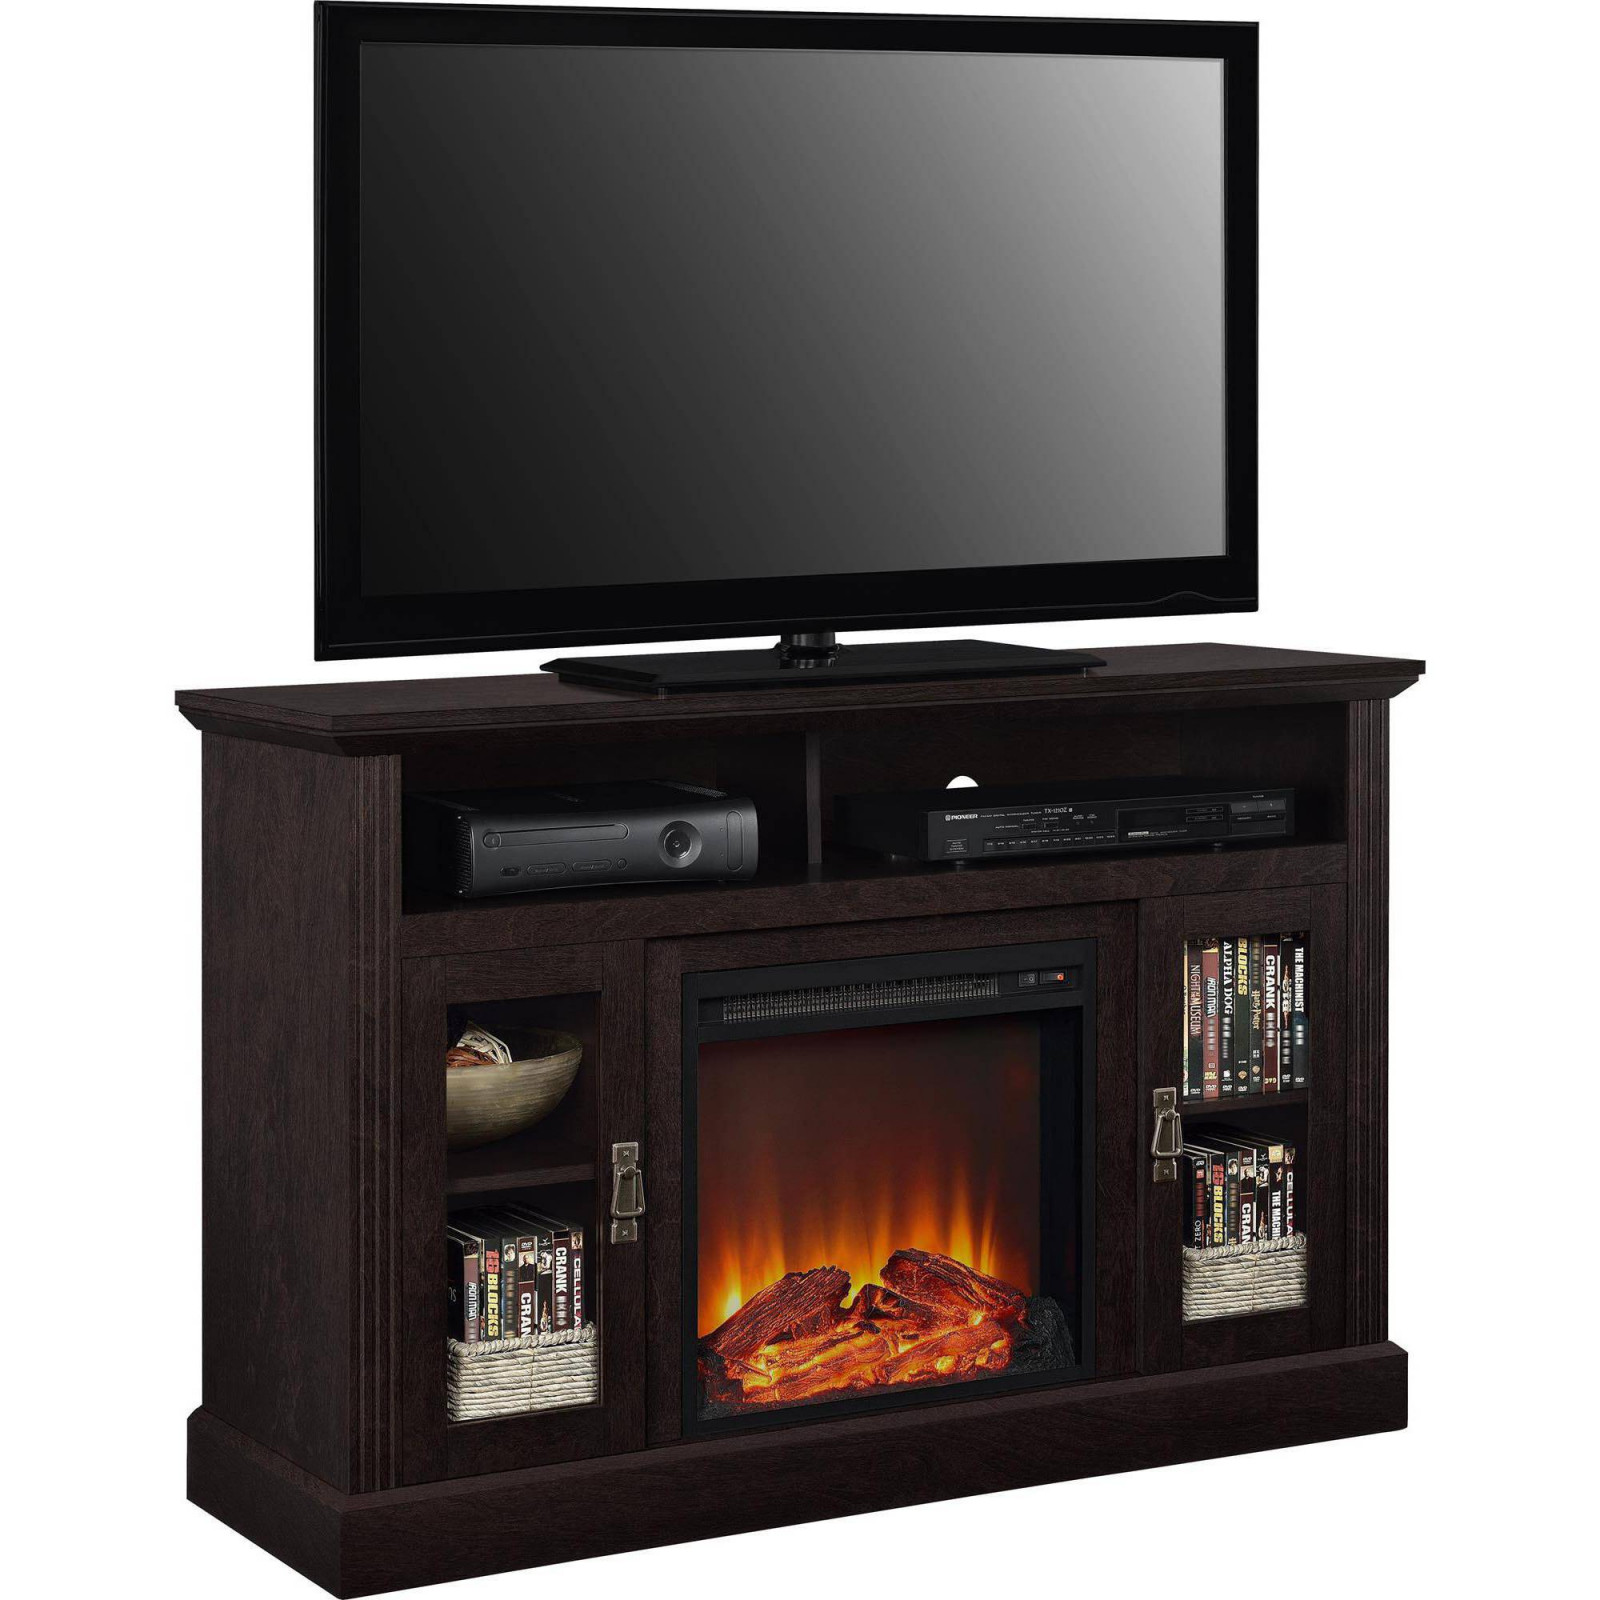 electric fireplace tv stand inspirant ameriwood home chicago electric fireplace tv console for tvs up to a of electric fireplace tv stand